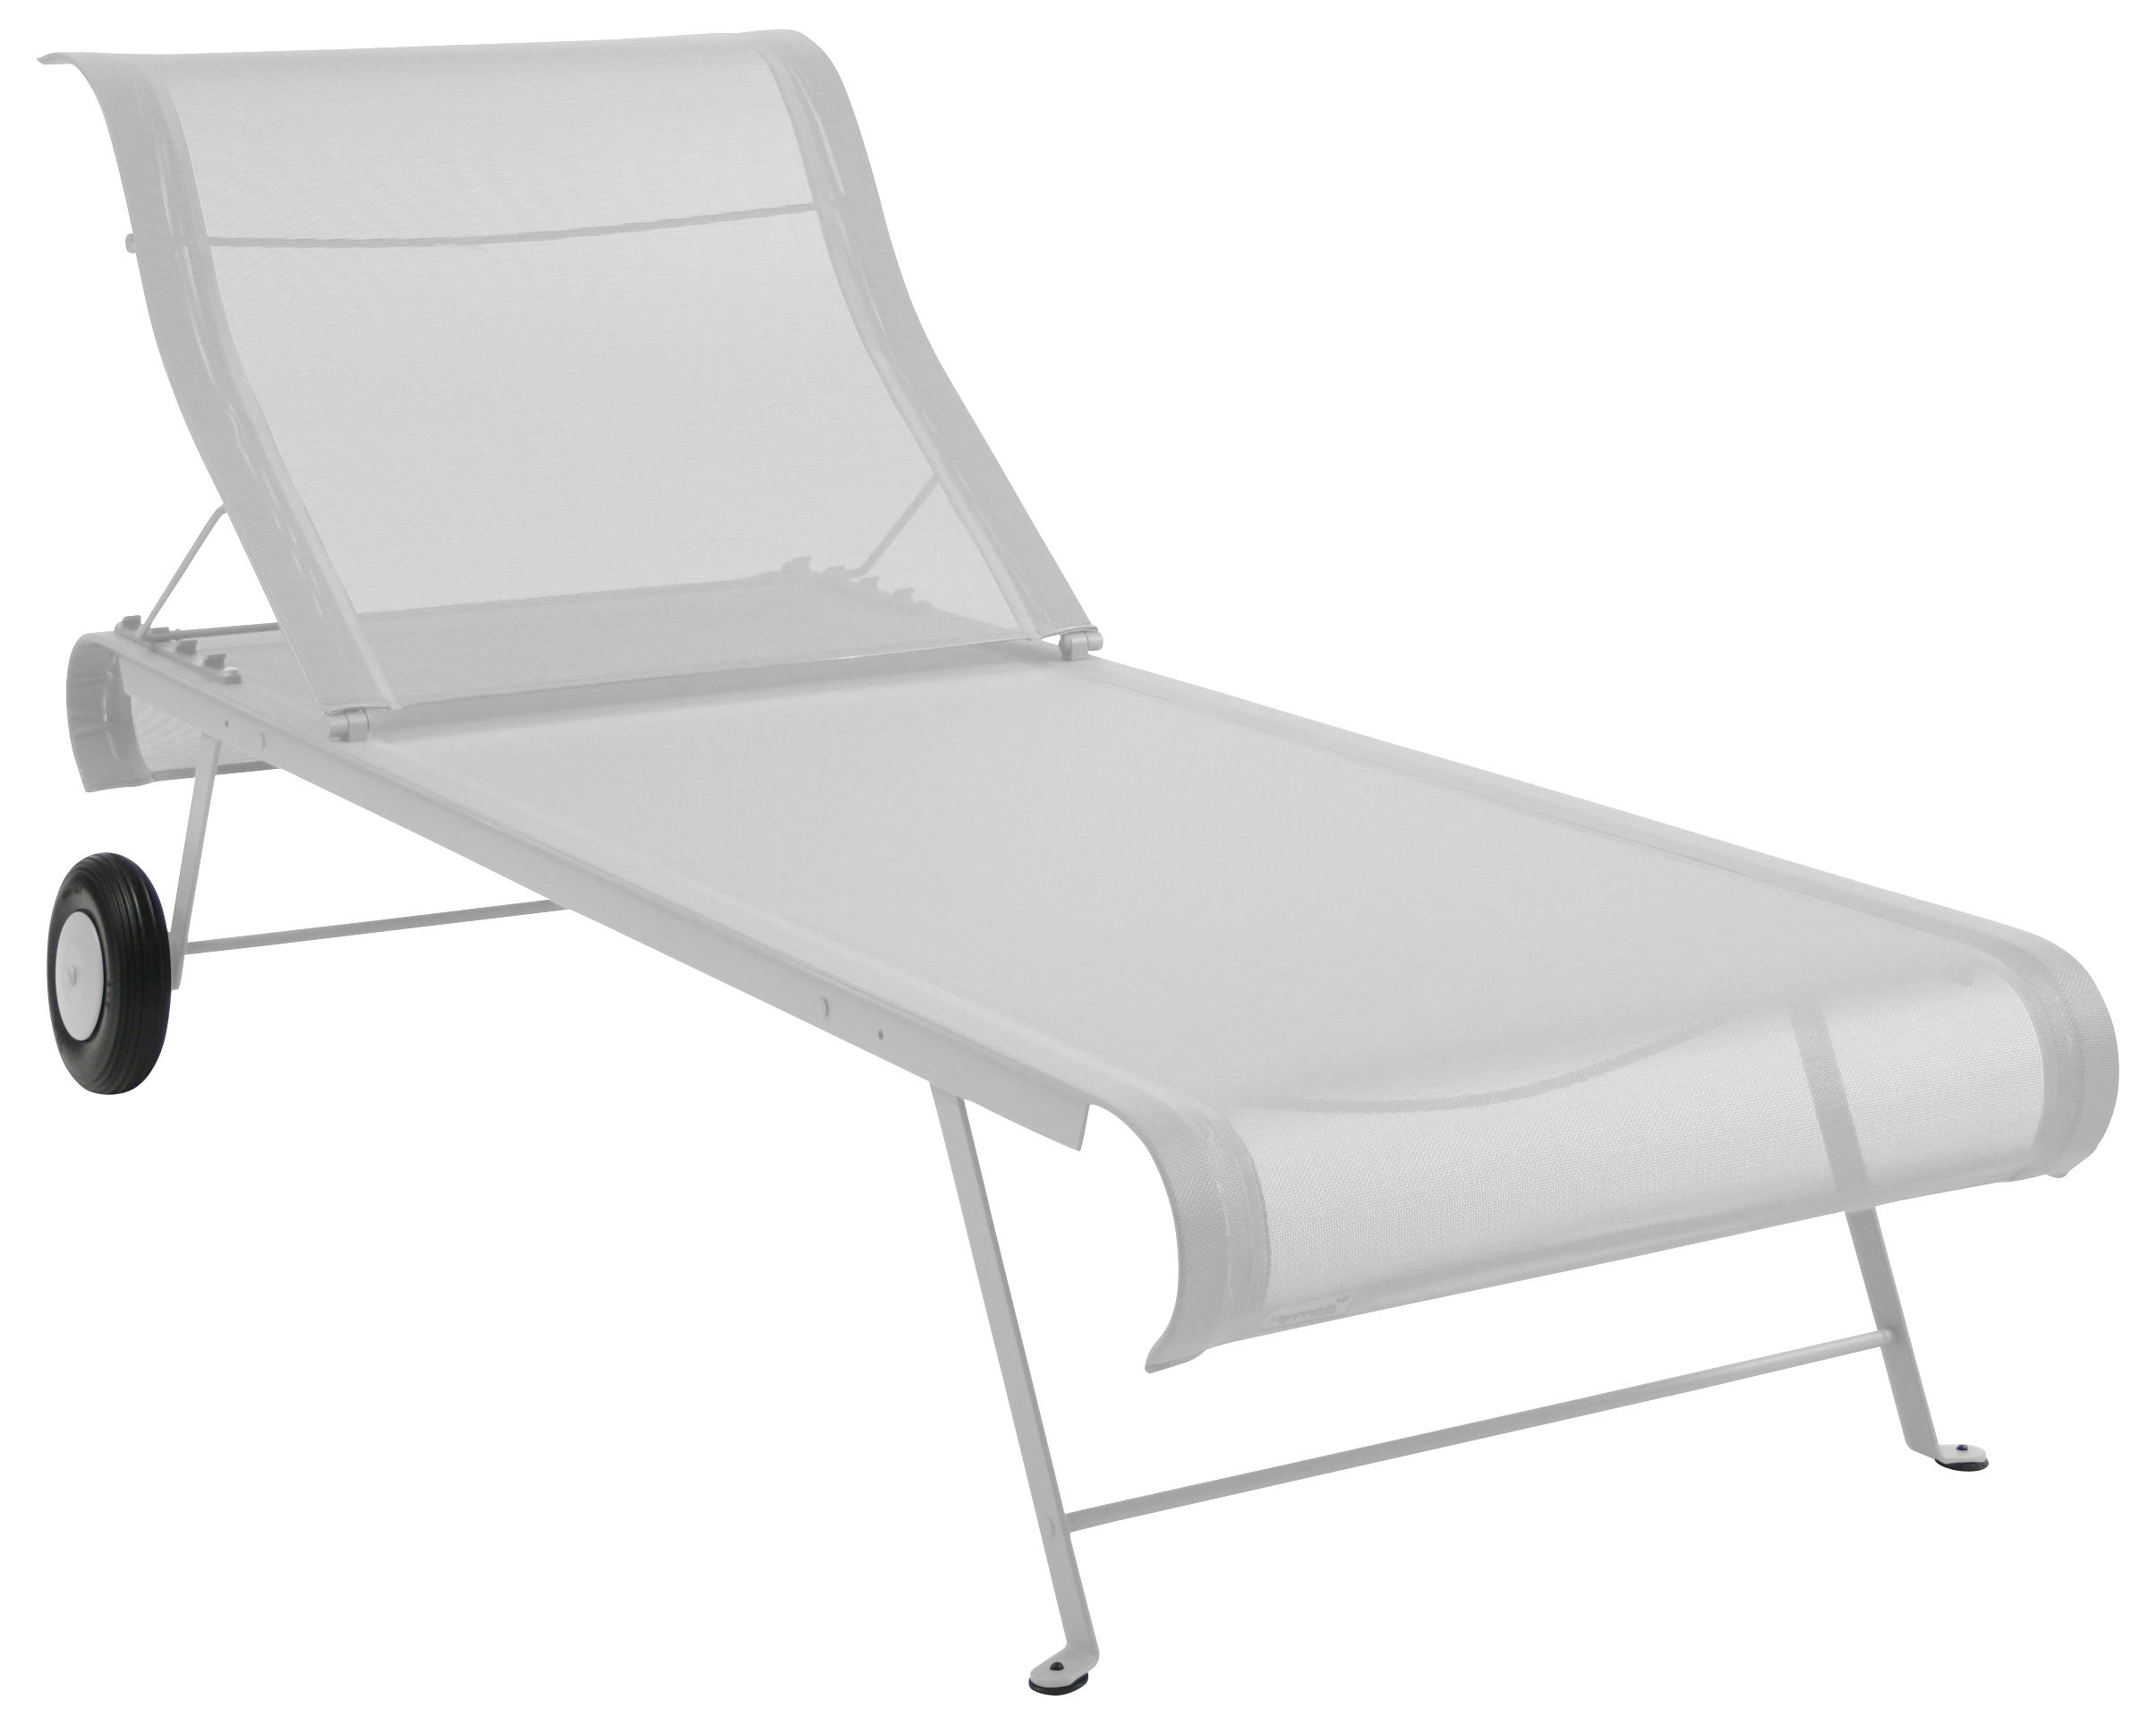 Outdoor - Sun Loungers & Hammocks - Dune Sun lounger by Fermob - White - Lacquered steel, Polyester cloth